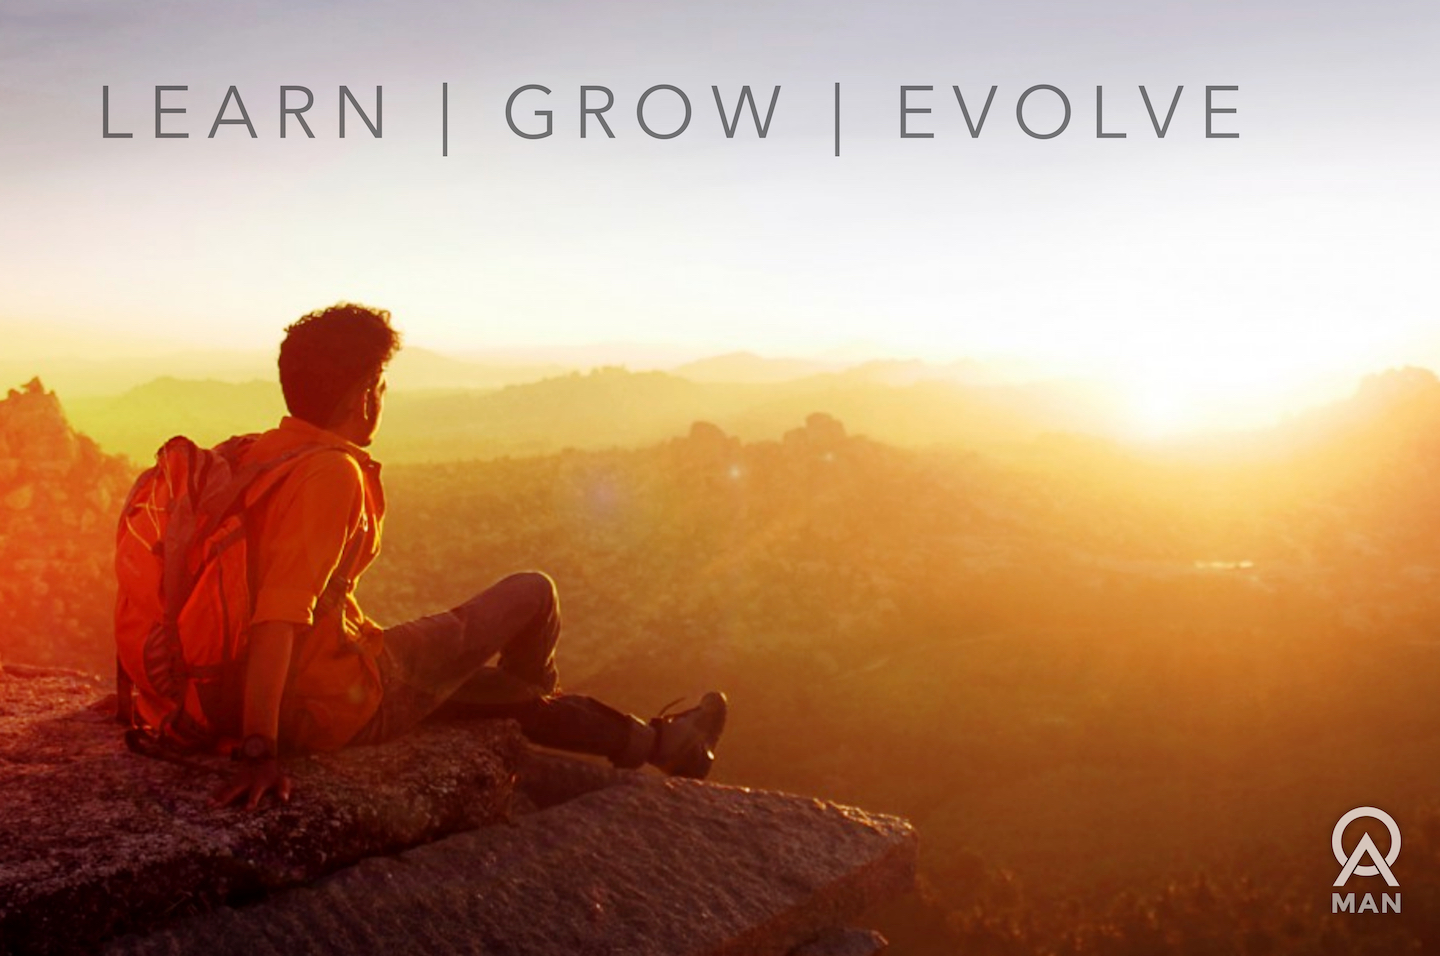 Learn. Grow. Evolve.